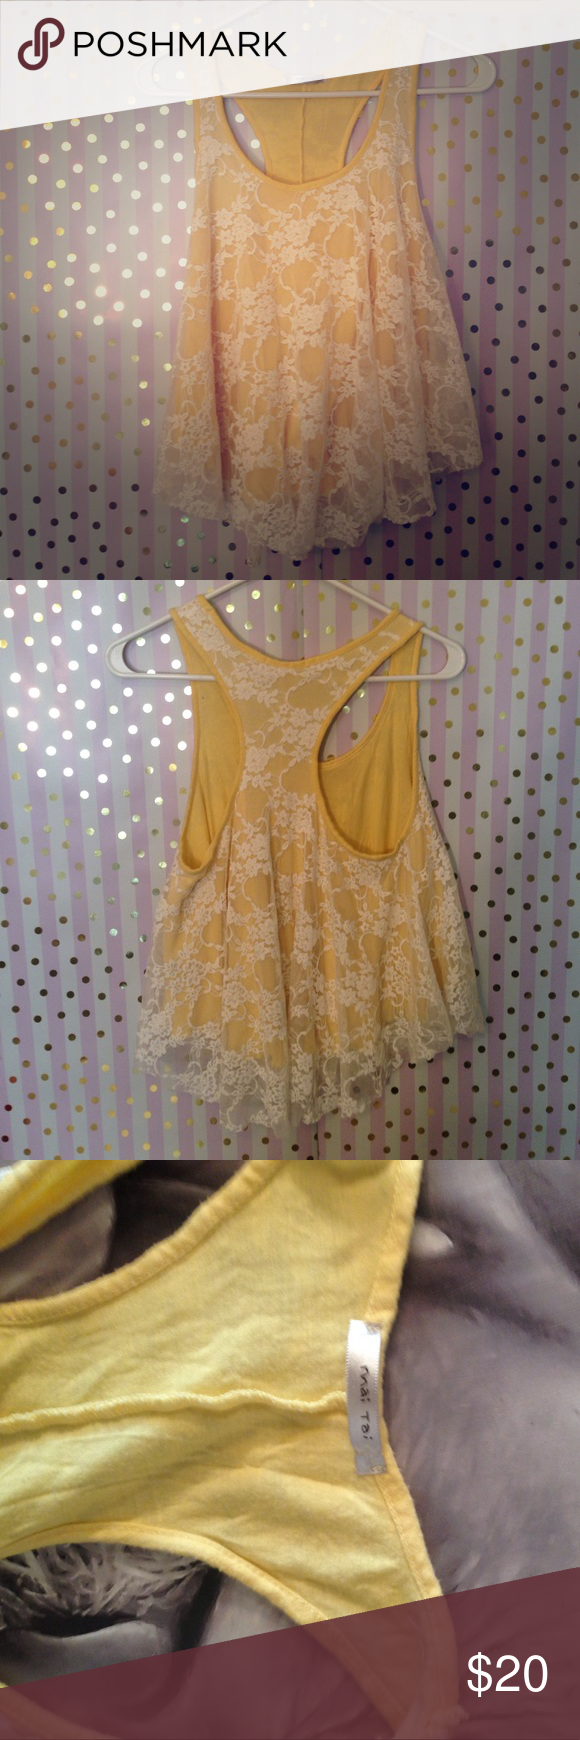 Lovely yellow and cream lace crop top The material for the yellow is so soft and the cream lace is as well. It's not the type that's irritating and scratchy. It's a half shirt or crop top and it's only been worn one. Mai Tai Tops Crop Tops